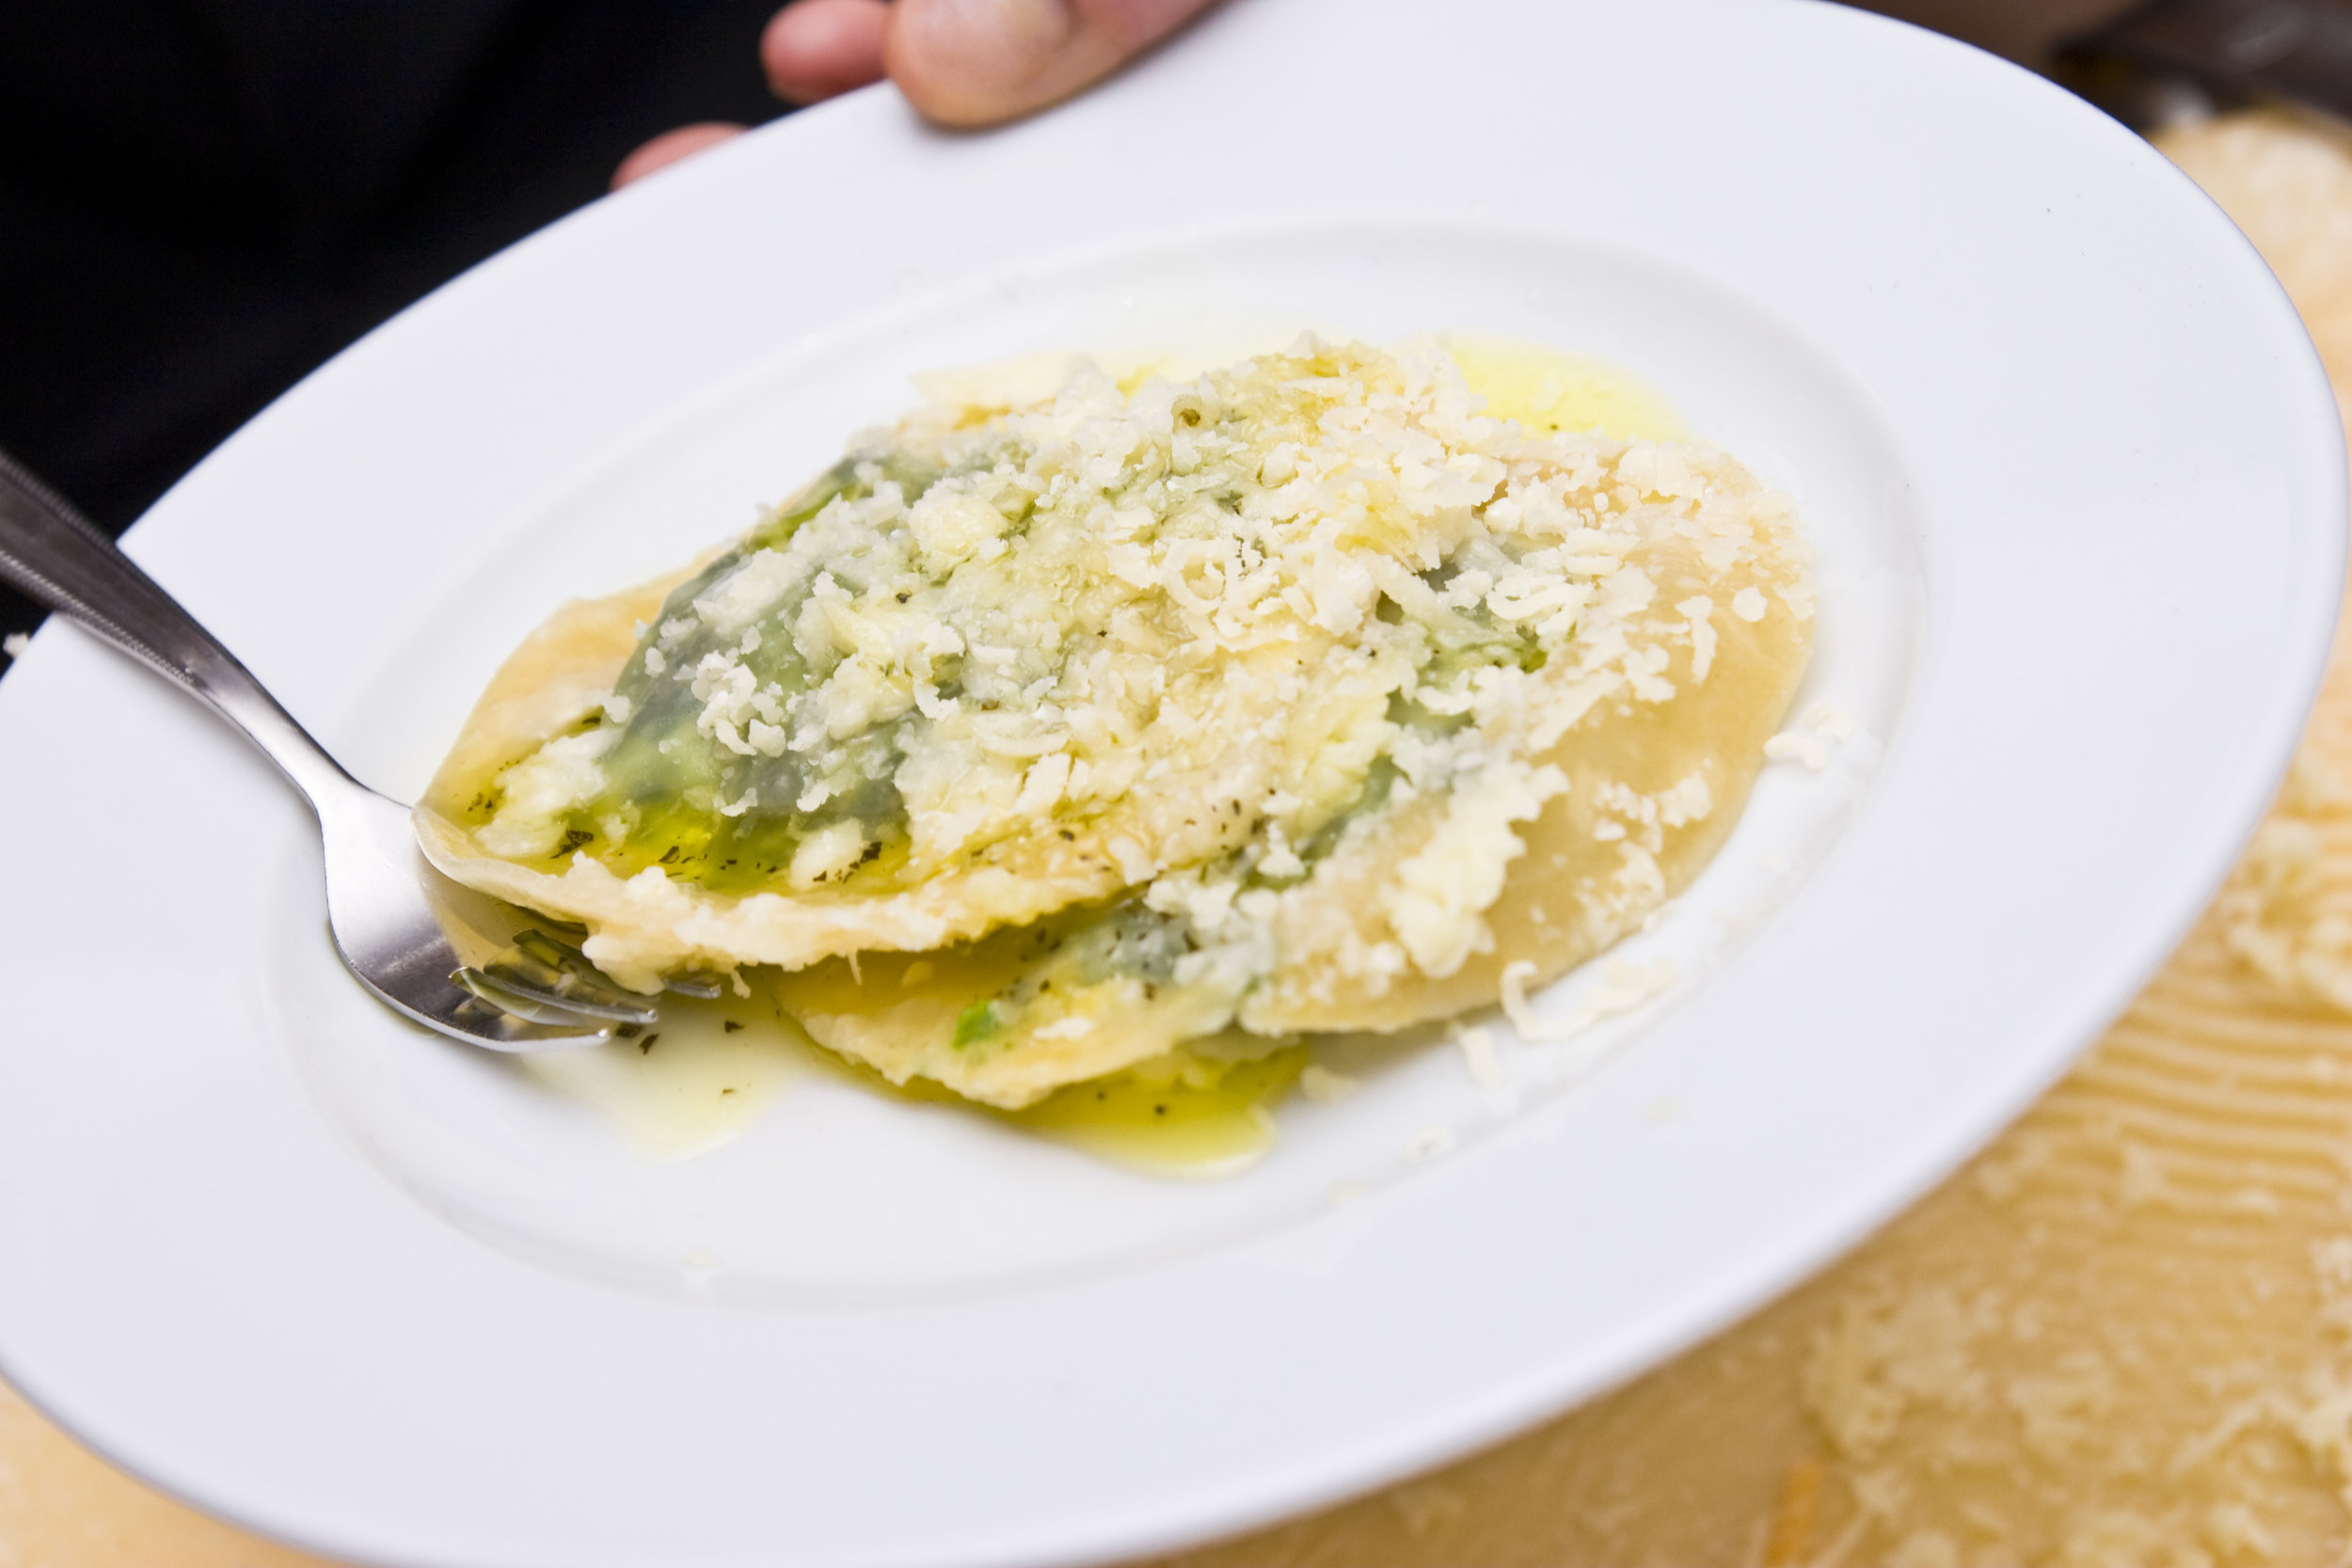 We don't smother the pasta in thick sauce now.  Simplicity is the key.  Home made ravioli from the market, with a sage and butter sauce.  Sprinkled with parmesan cheese.